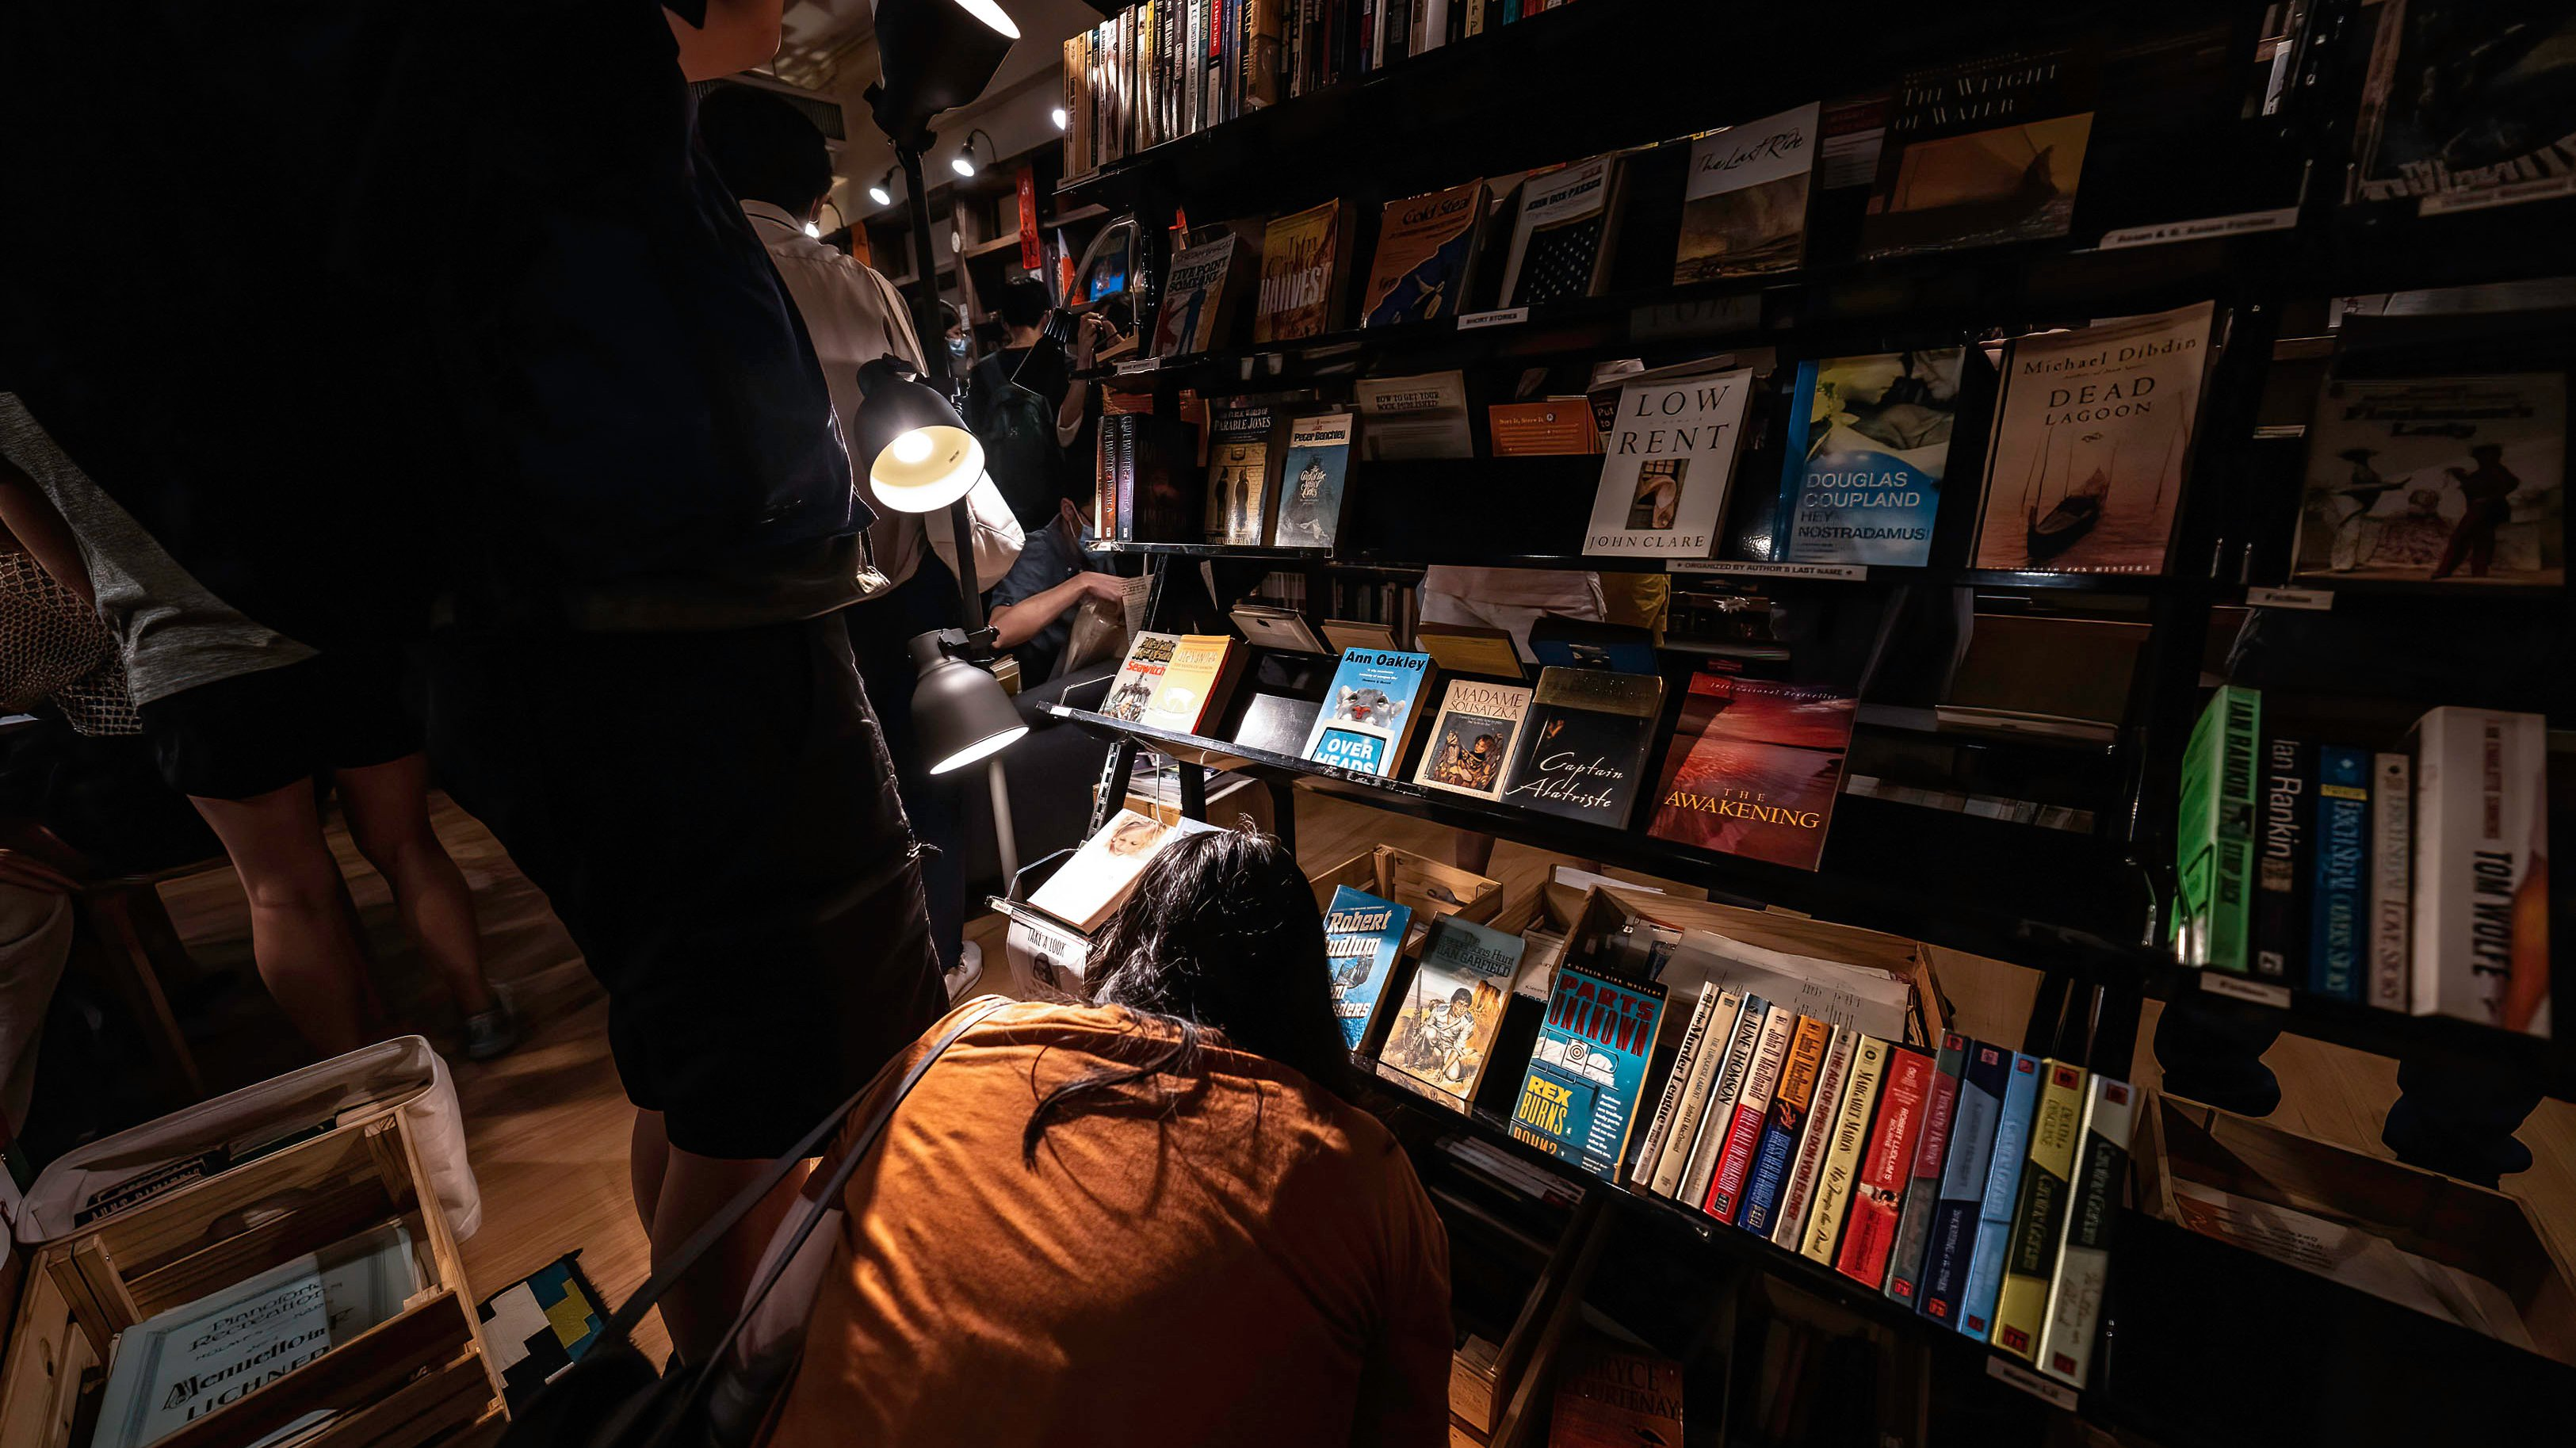 A woman browses the books on a bottom shelf.Crowds of